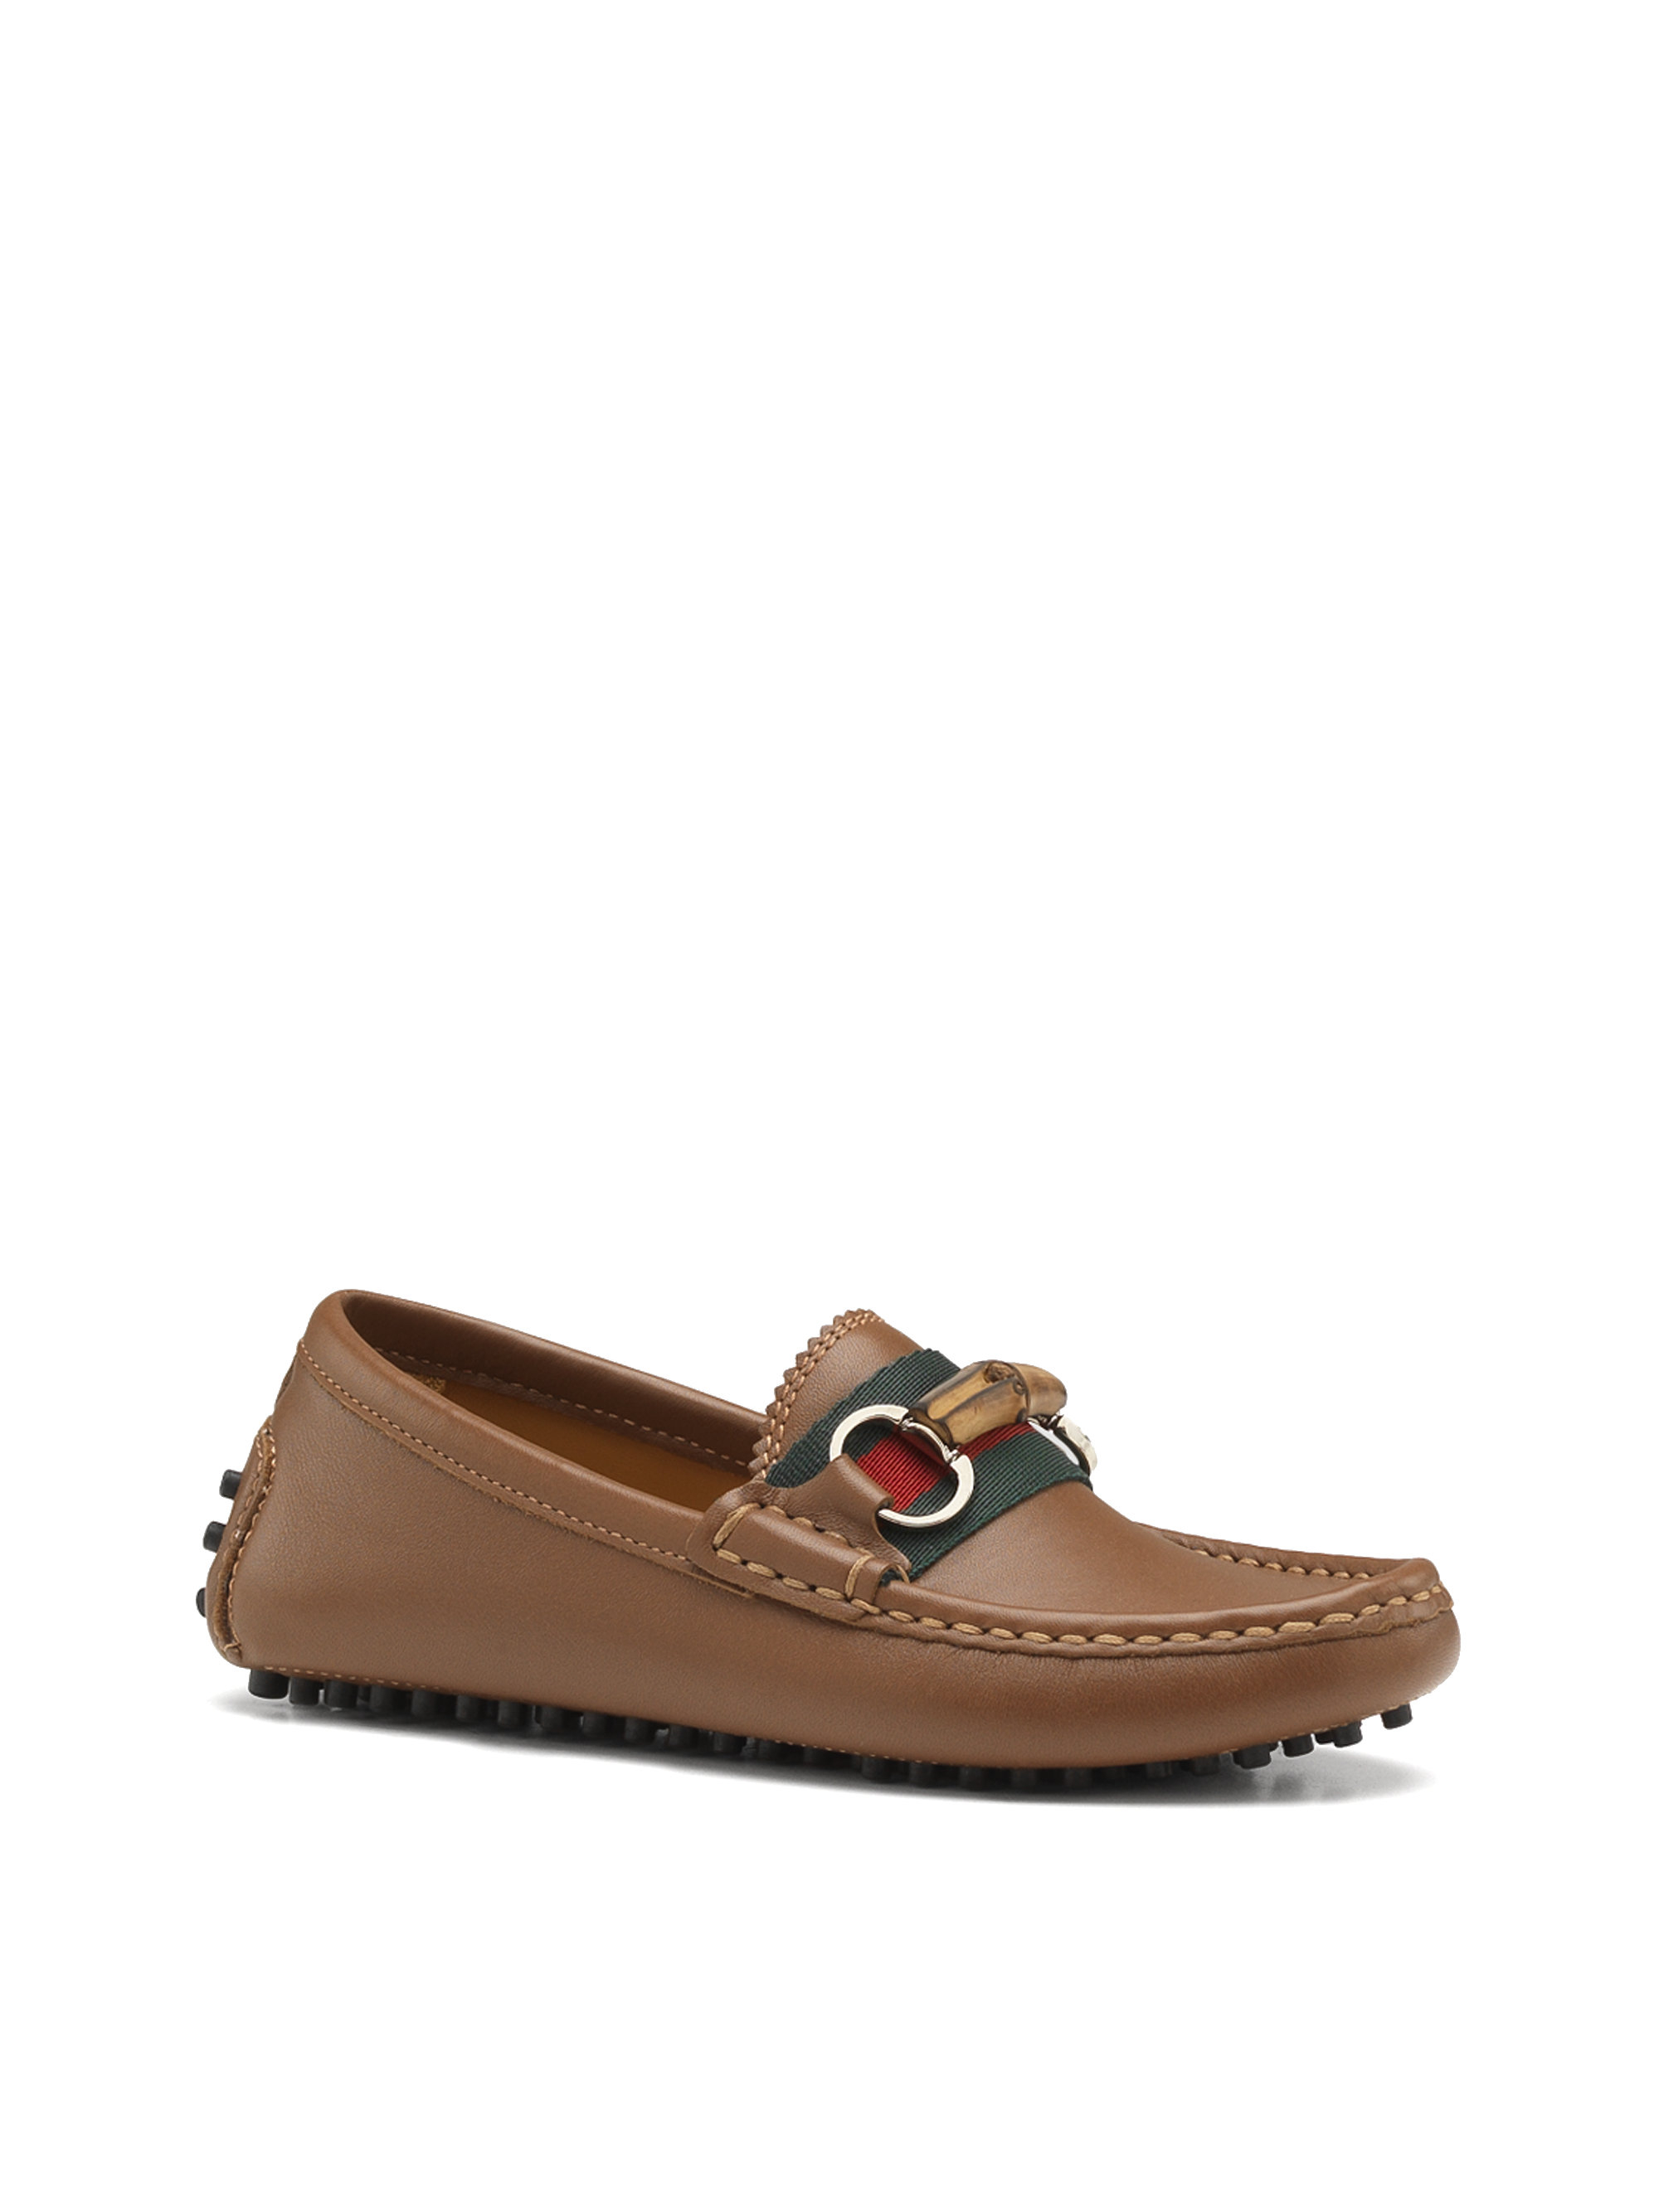 91a21ccef3a1 Lyst - Gucci Kids Leather Driver Loafers in Brown for Men